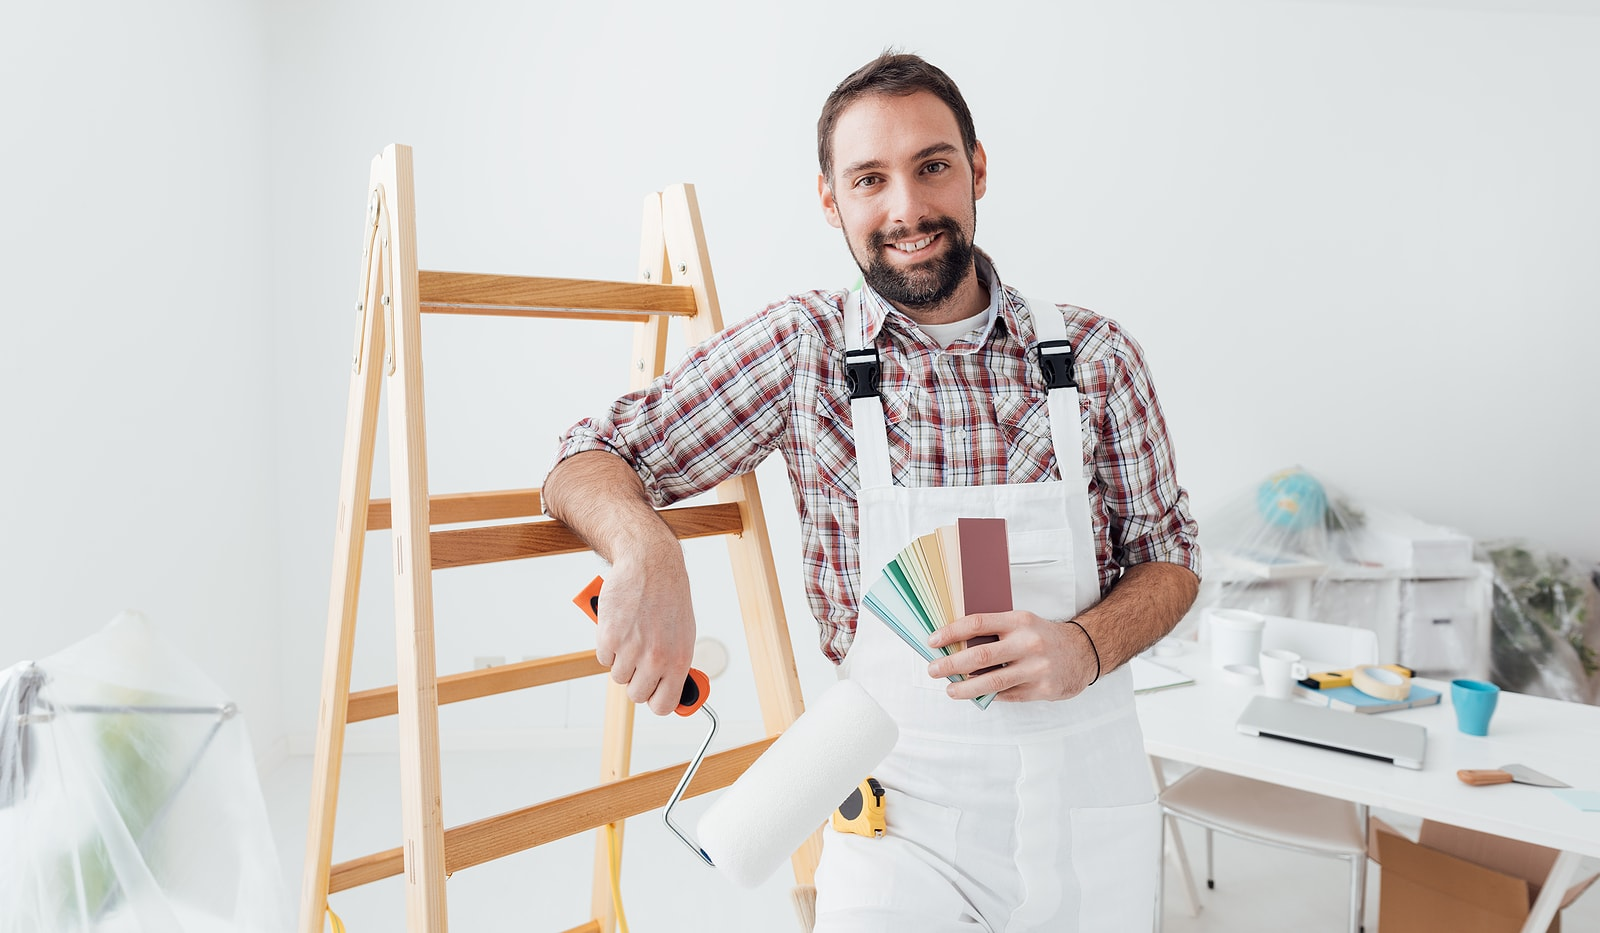 A smiling man standing in front of a white wall. Leaning against a step ladder, holding colour patches and a roller for painting.